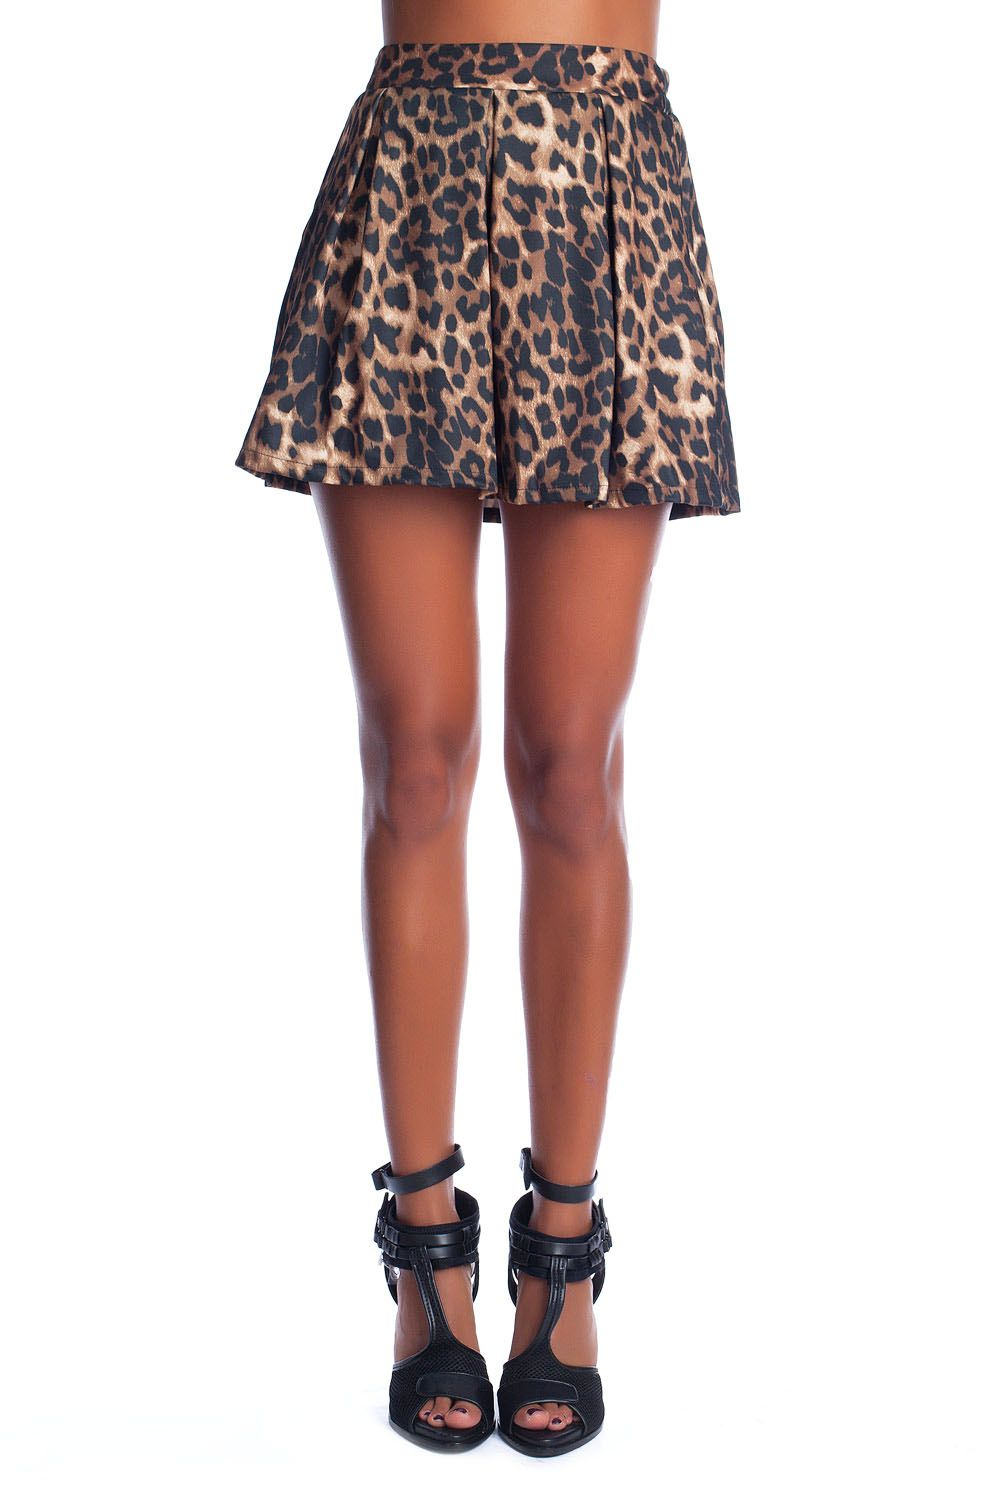 Brown skater skirt in leopard print - Q2 Shop - Tienda de moda online